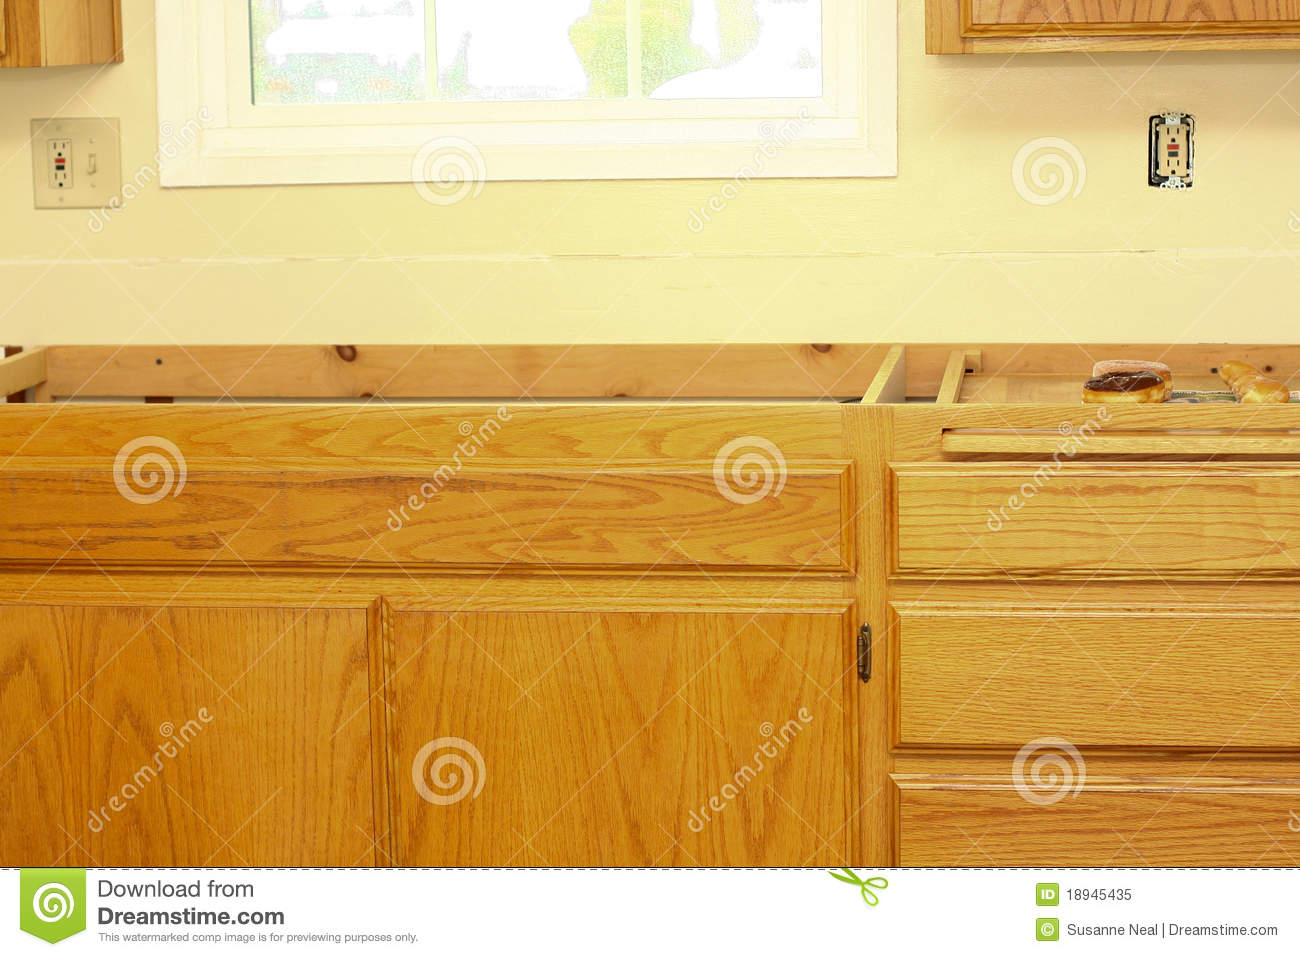 Kitchen Countertop Needs To Be Installed Royalty Free